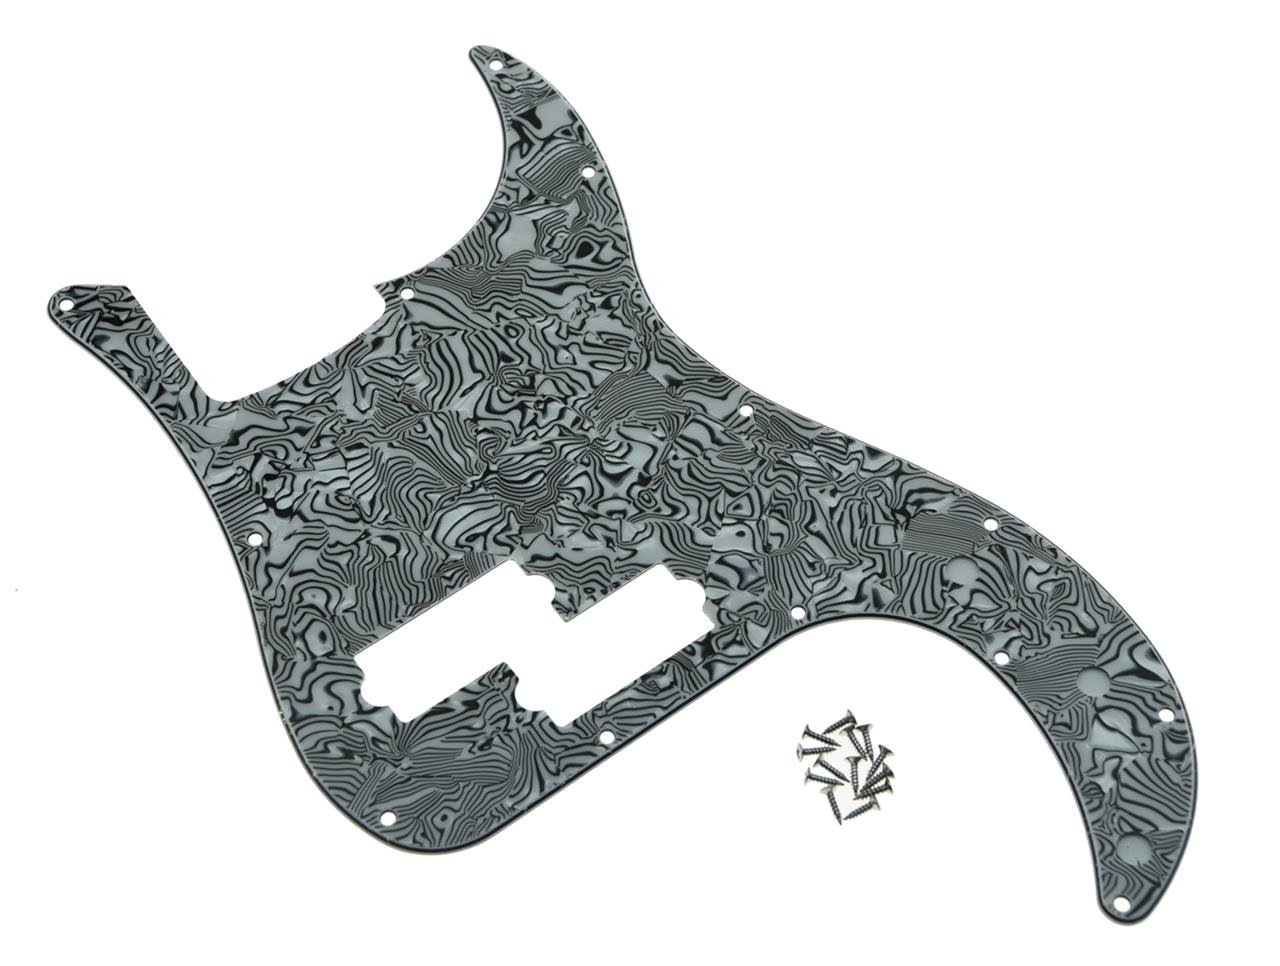 KAISH 13 Hole Precision Bass Pickguard PB P Bass Scratch Plate Fits USA/Mexican Fender Precision Bass Vintage Tortoise Kaish Music PB633